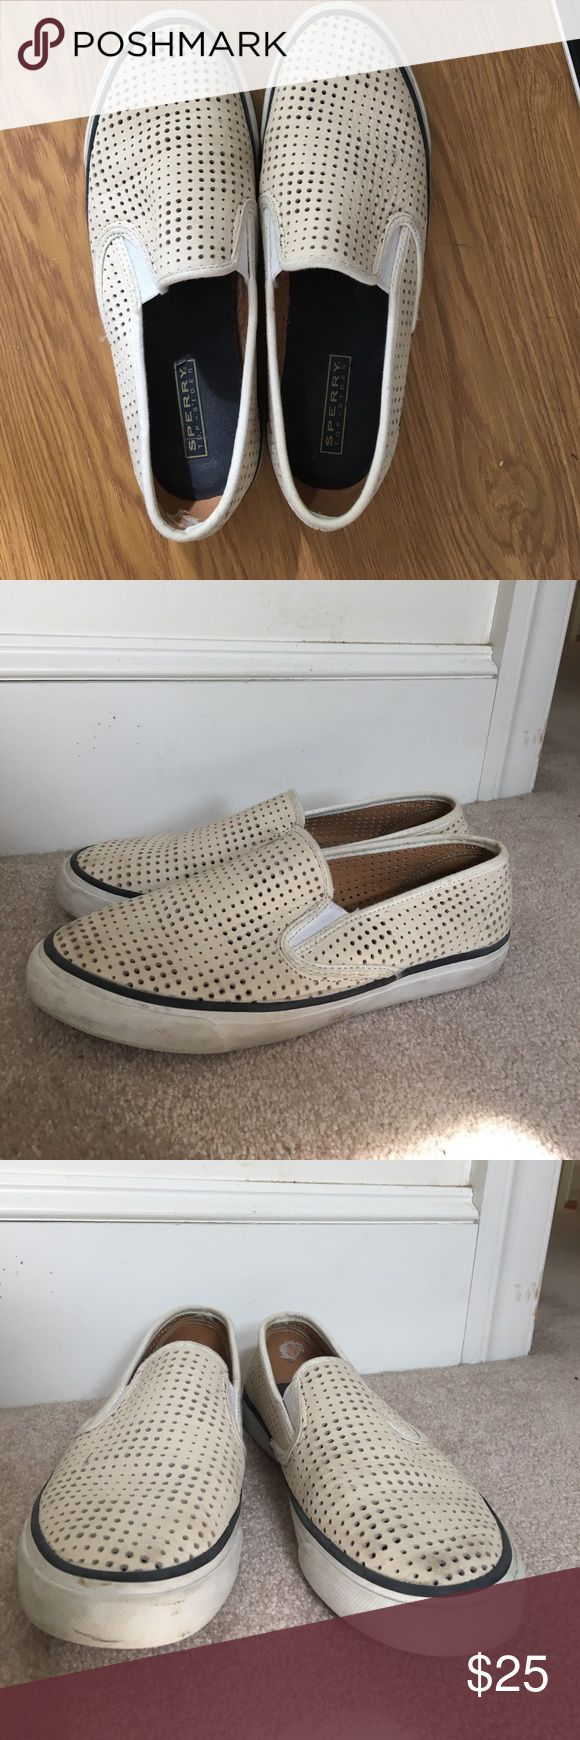 Sperry slip on Sneaker Cute and comfortable off white sperry slip on sneakers Sperry Top-Sider Shoes Sneakers